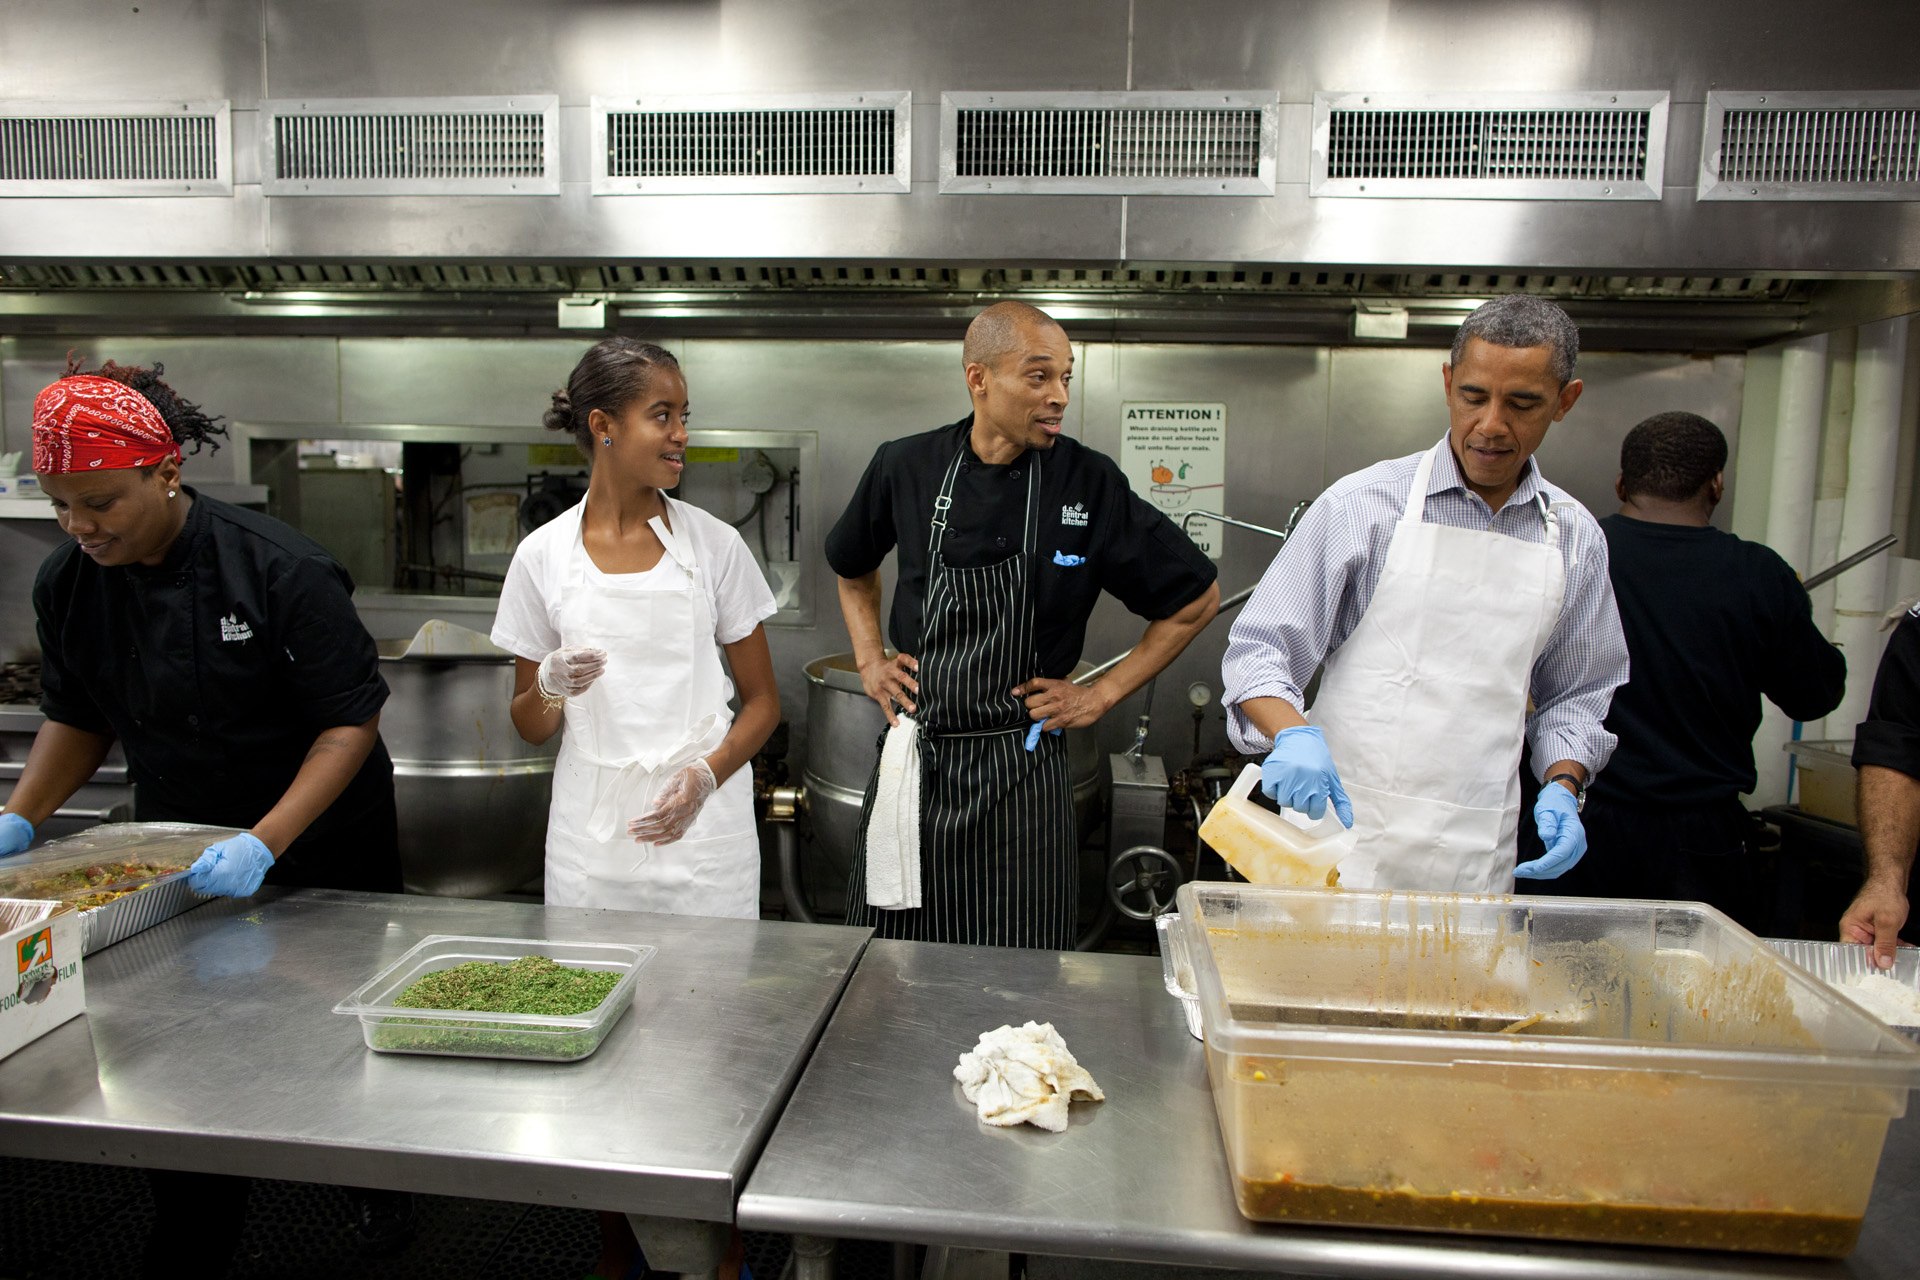 President Barack Obama and daughter Malia Obama participate in a service project at DC Kitchen